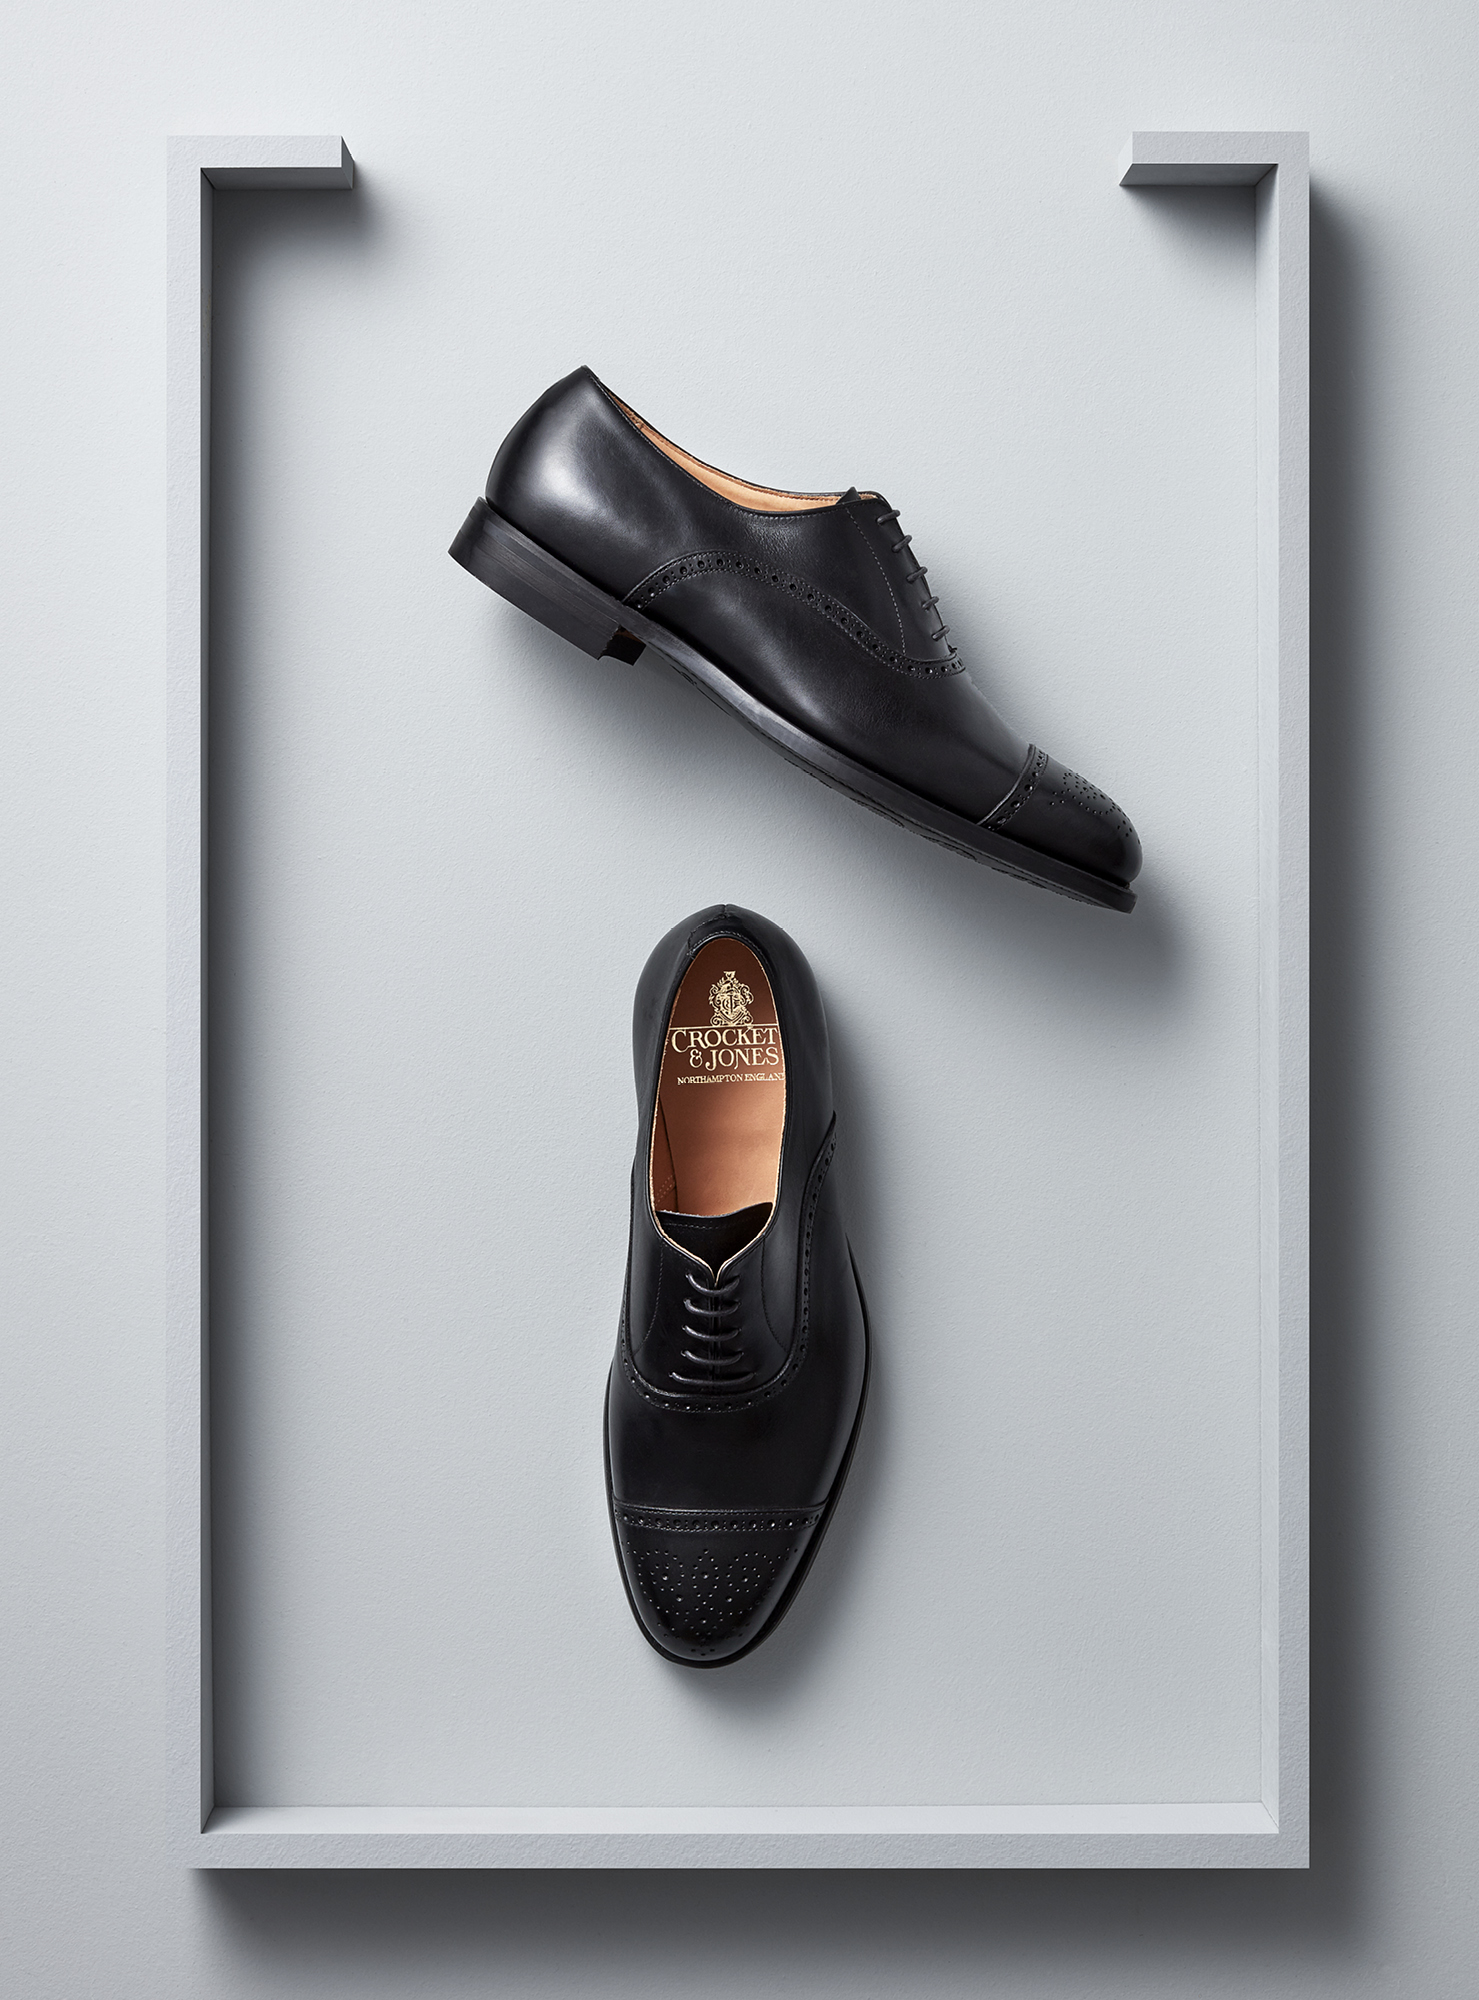 Crockett & Jones' Hatton style